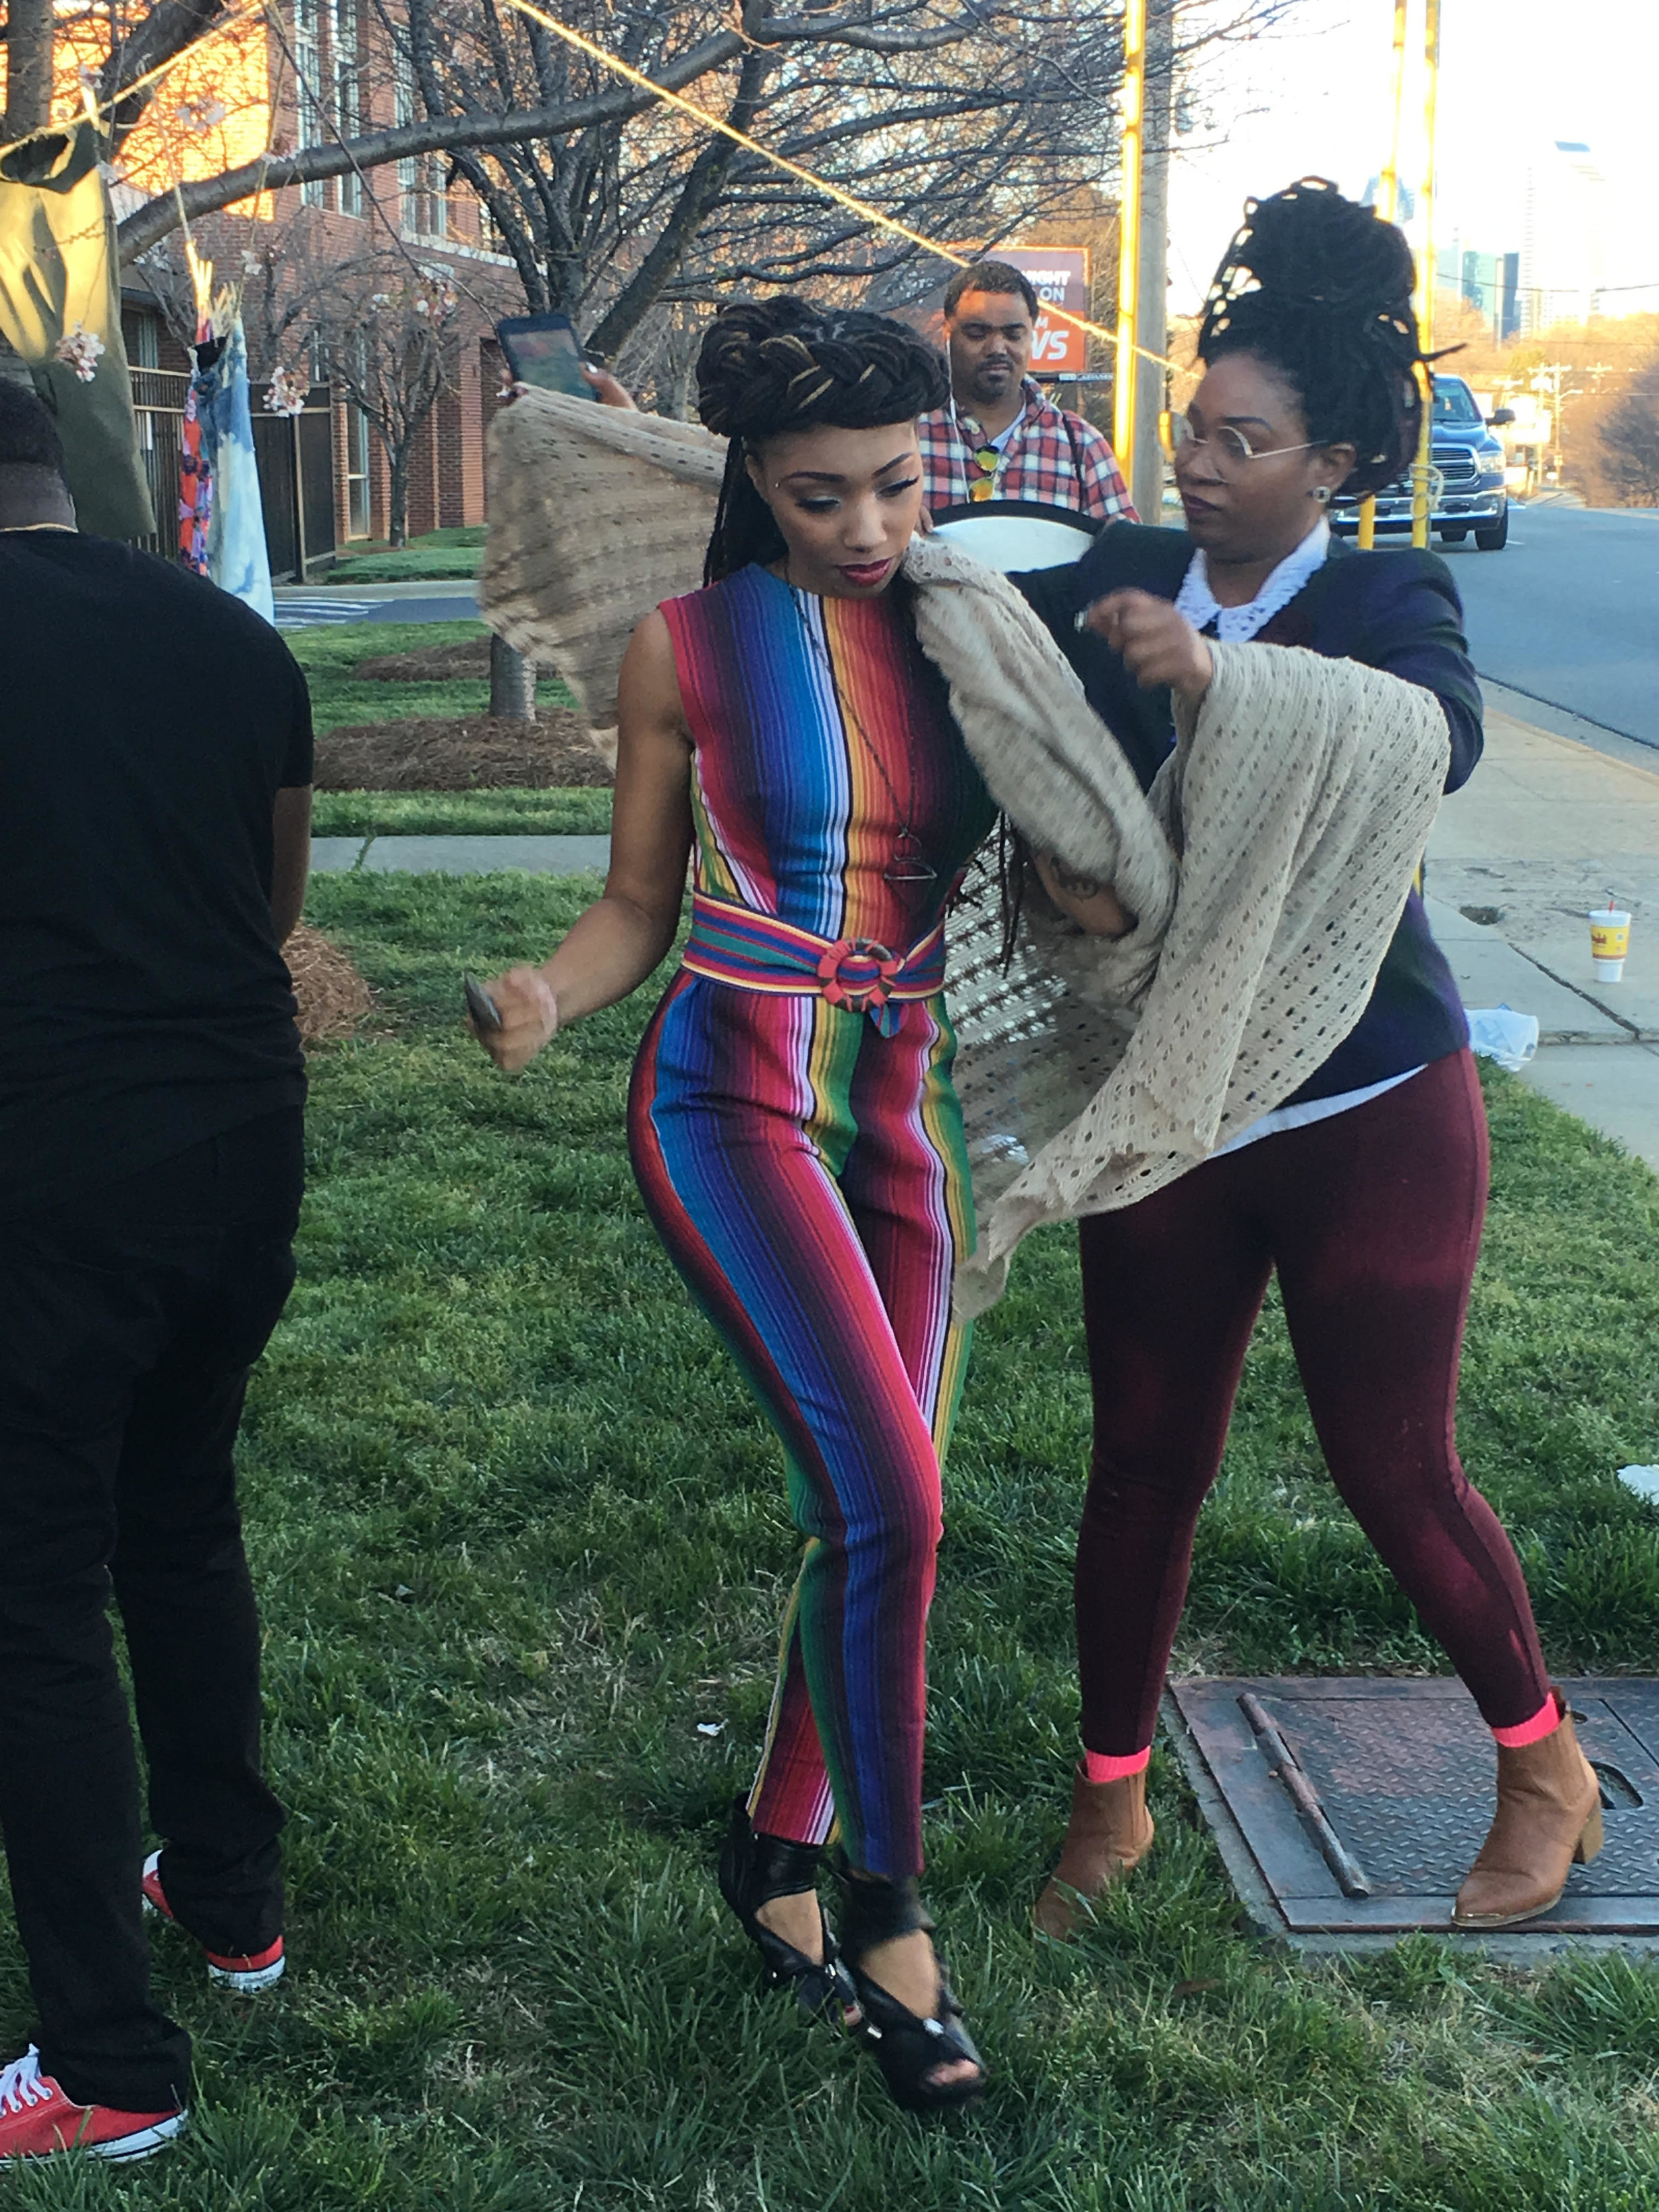 Jamese Patterson pictures above as Asst. Stylist for VonRay with Dutchess of VH-1 & Pretty-N-Ink., Editorial Shoot for Heed Magazine